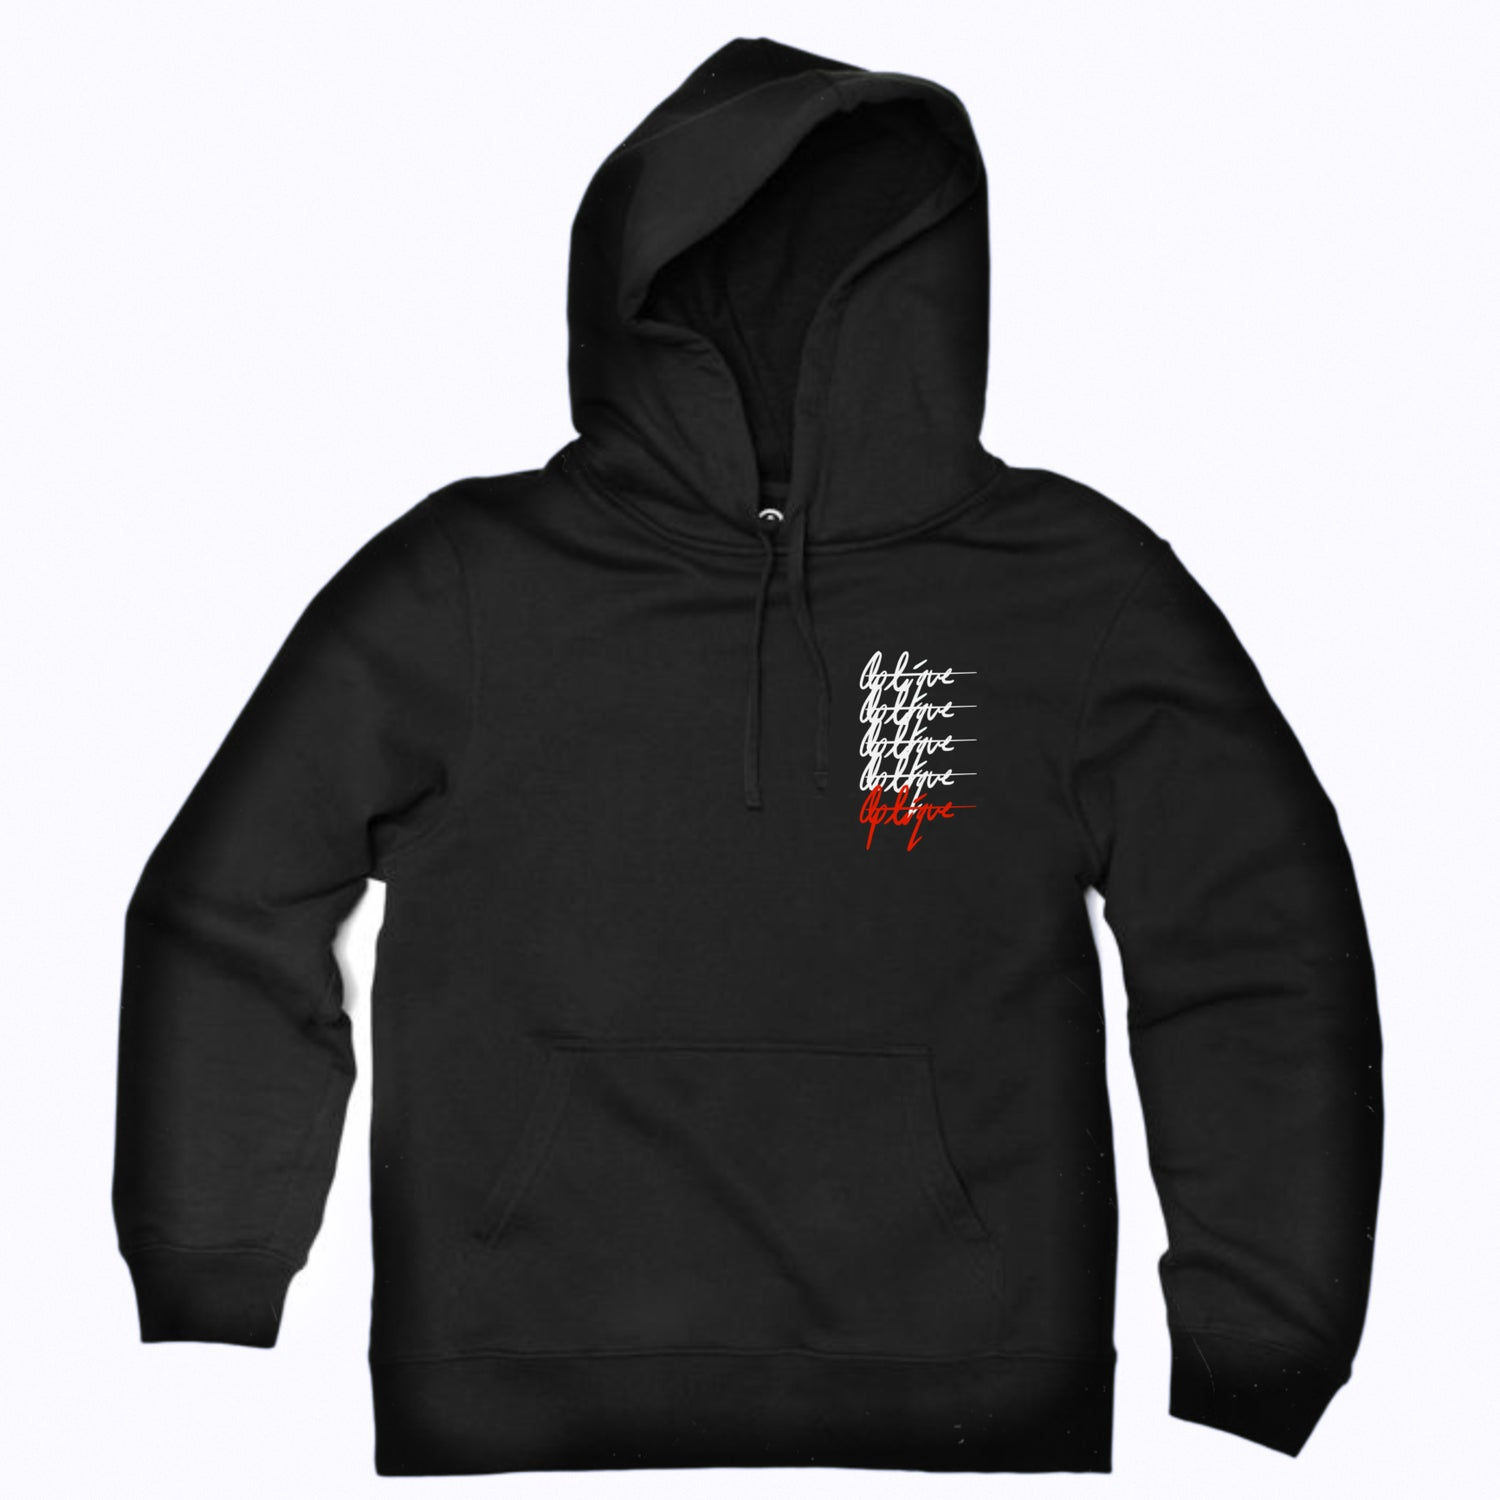 Image of OPTIQTINES Hoodie   France Classic   BLACK    *VERY LIMITED*